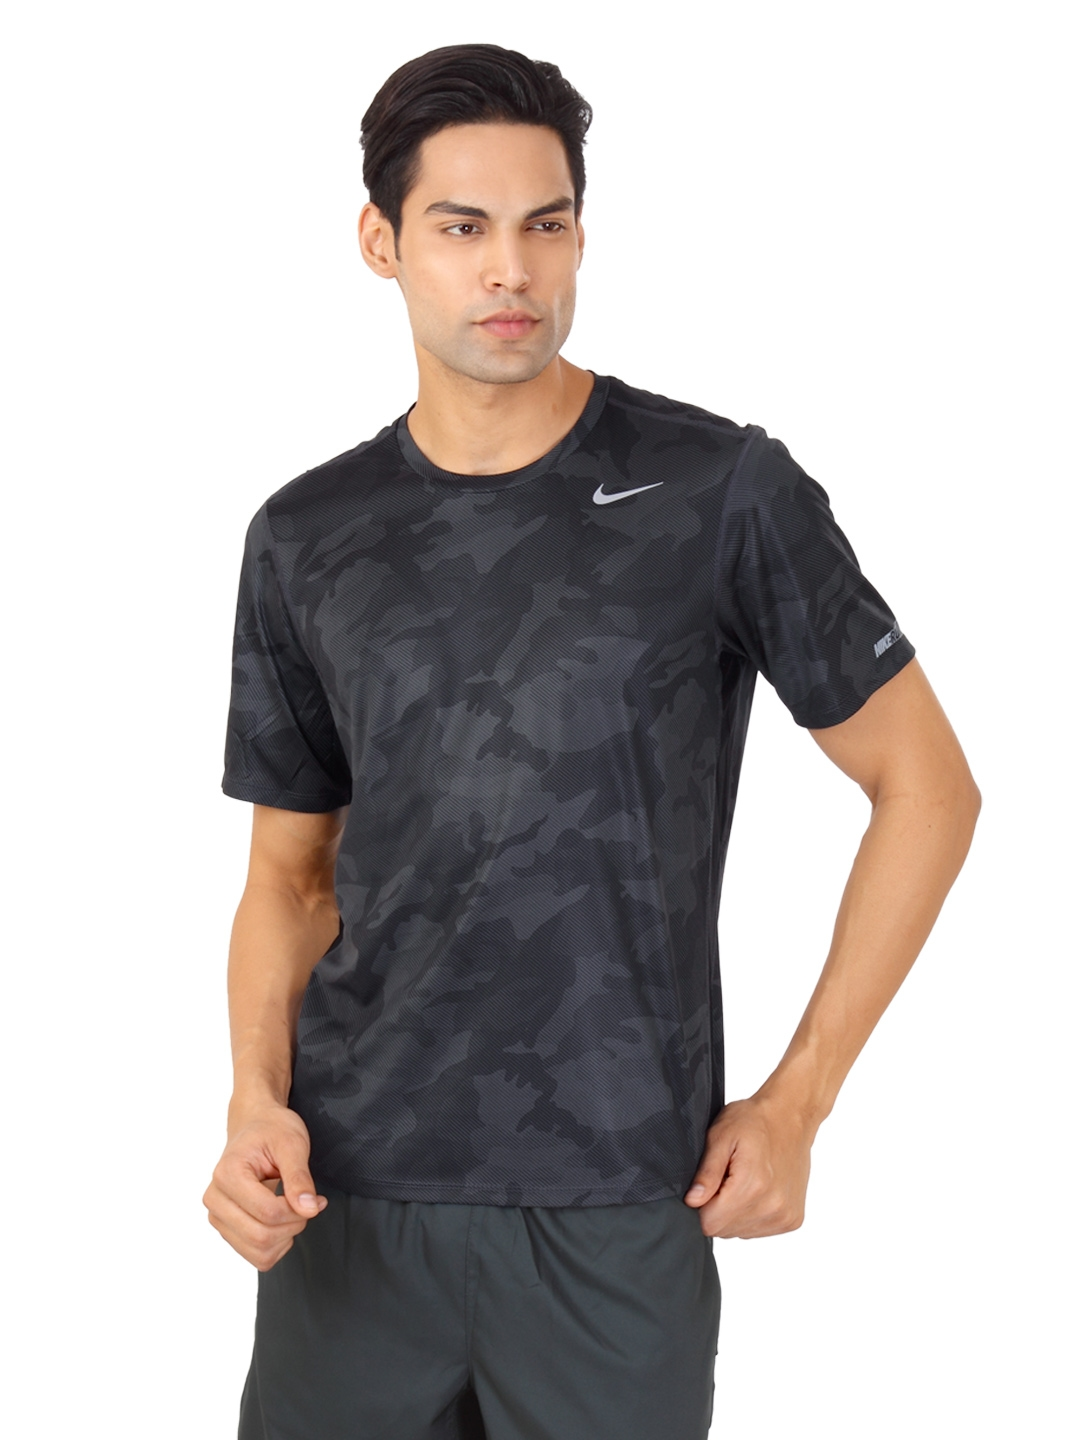 ae50576194cc Buy Nike Men Black   Grey Camouflage T Shirt - Tshirts for Men 85988 ...